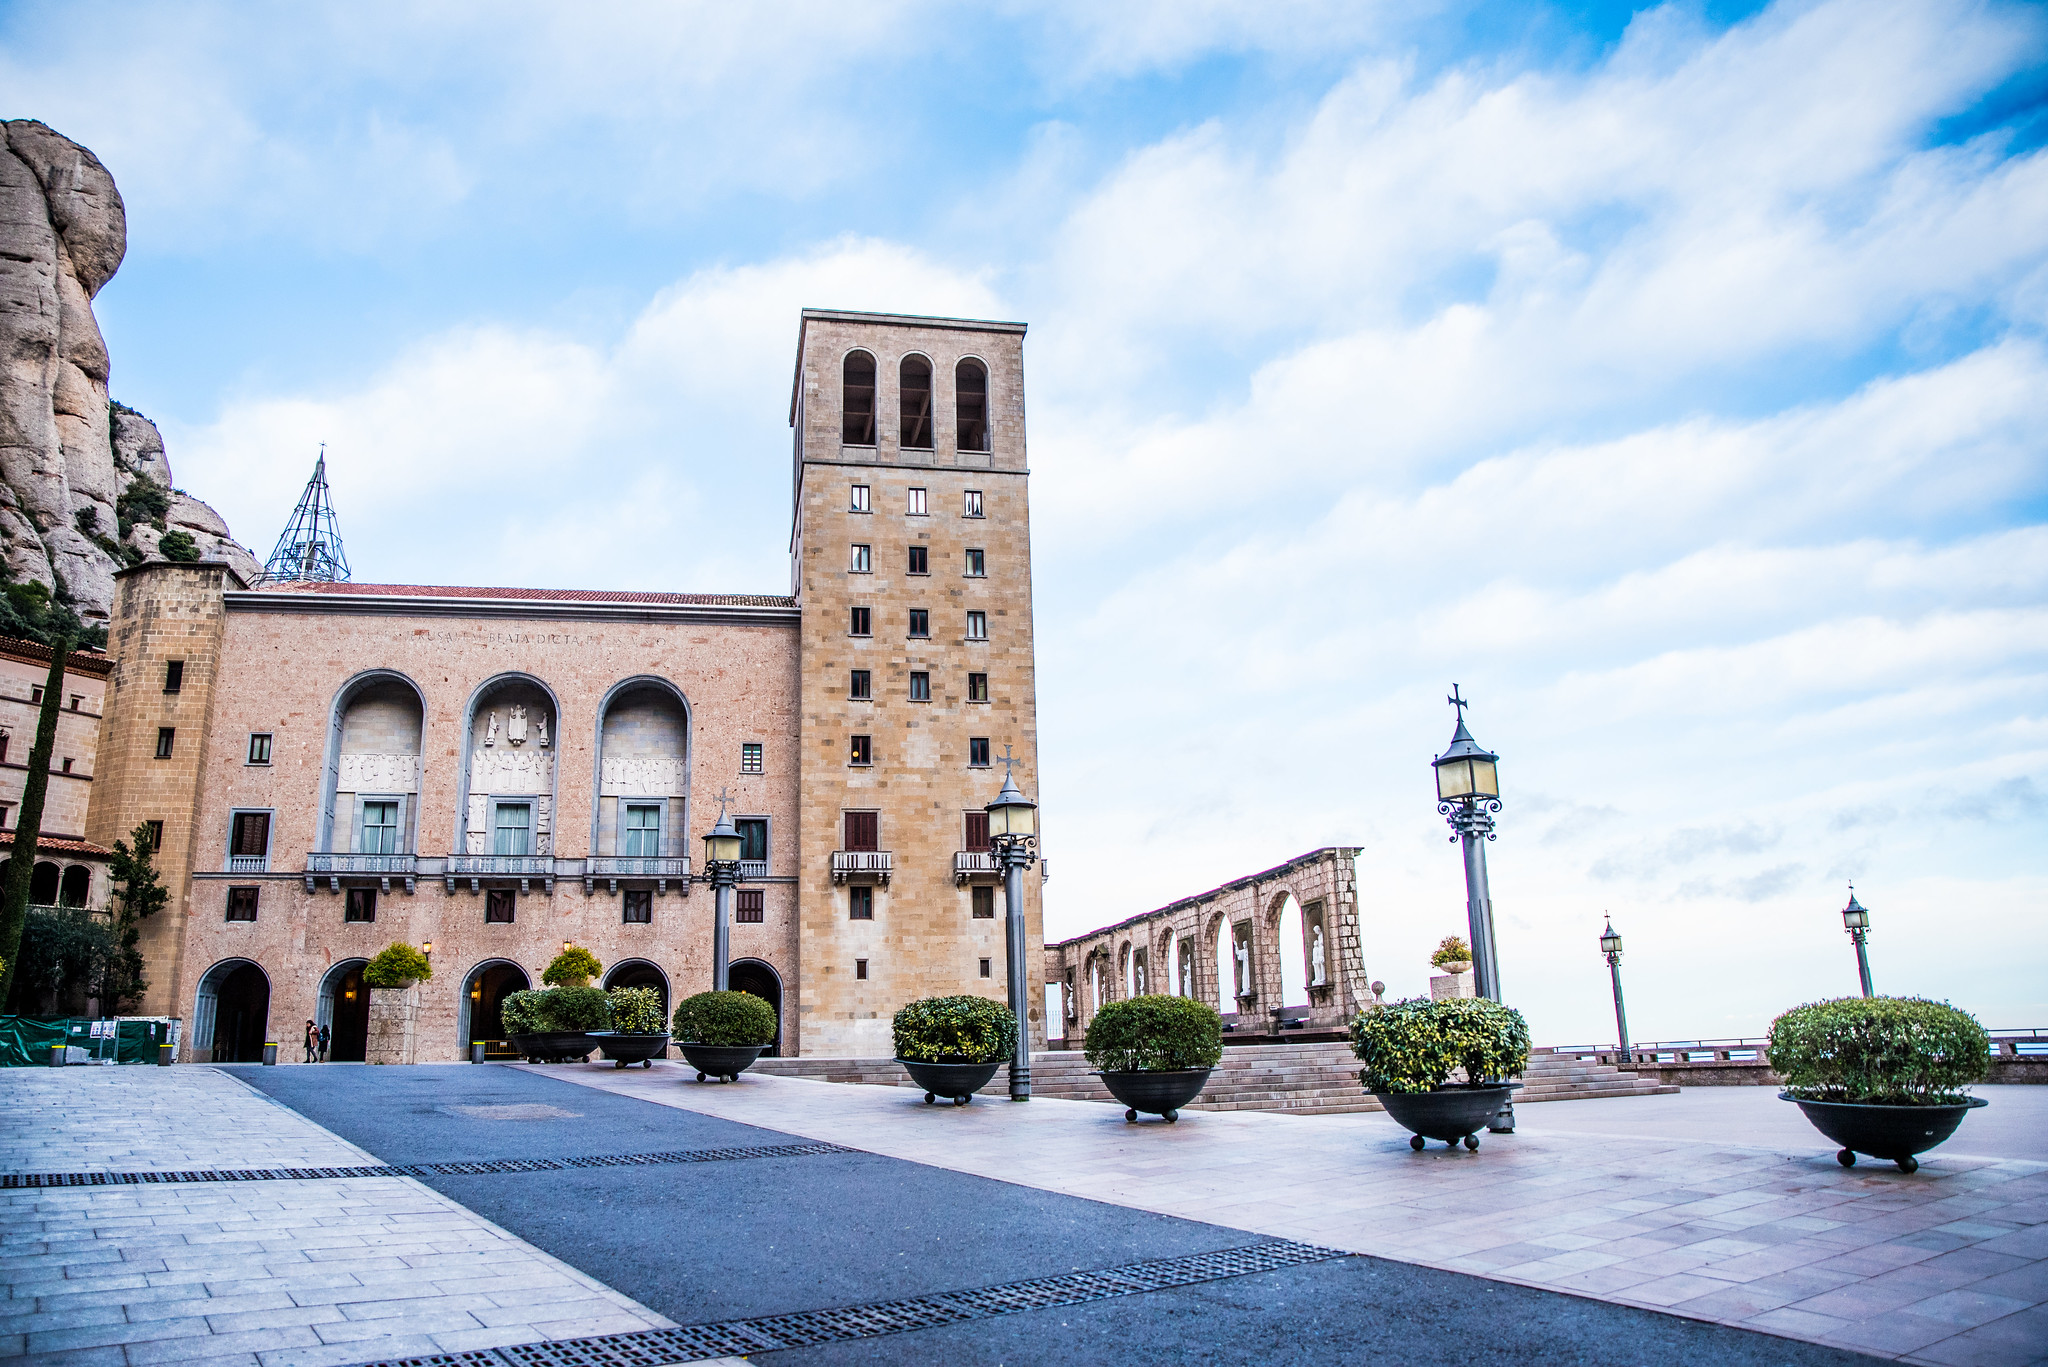 A new façade was built for the church was built after the Spanish Civil War ravaged the monastery.